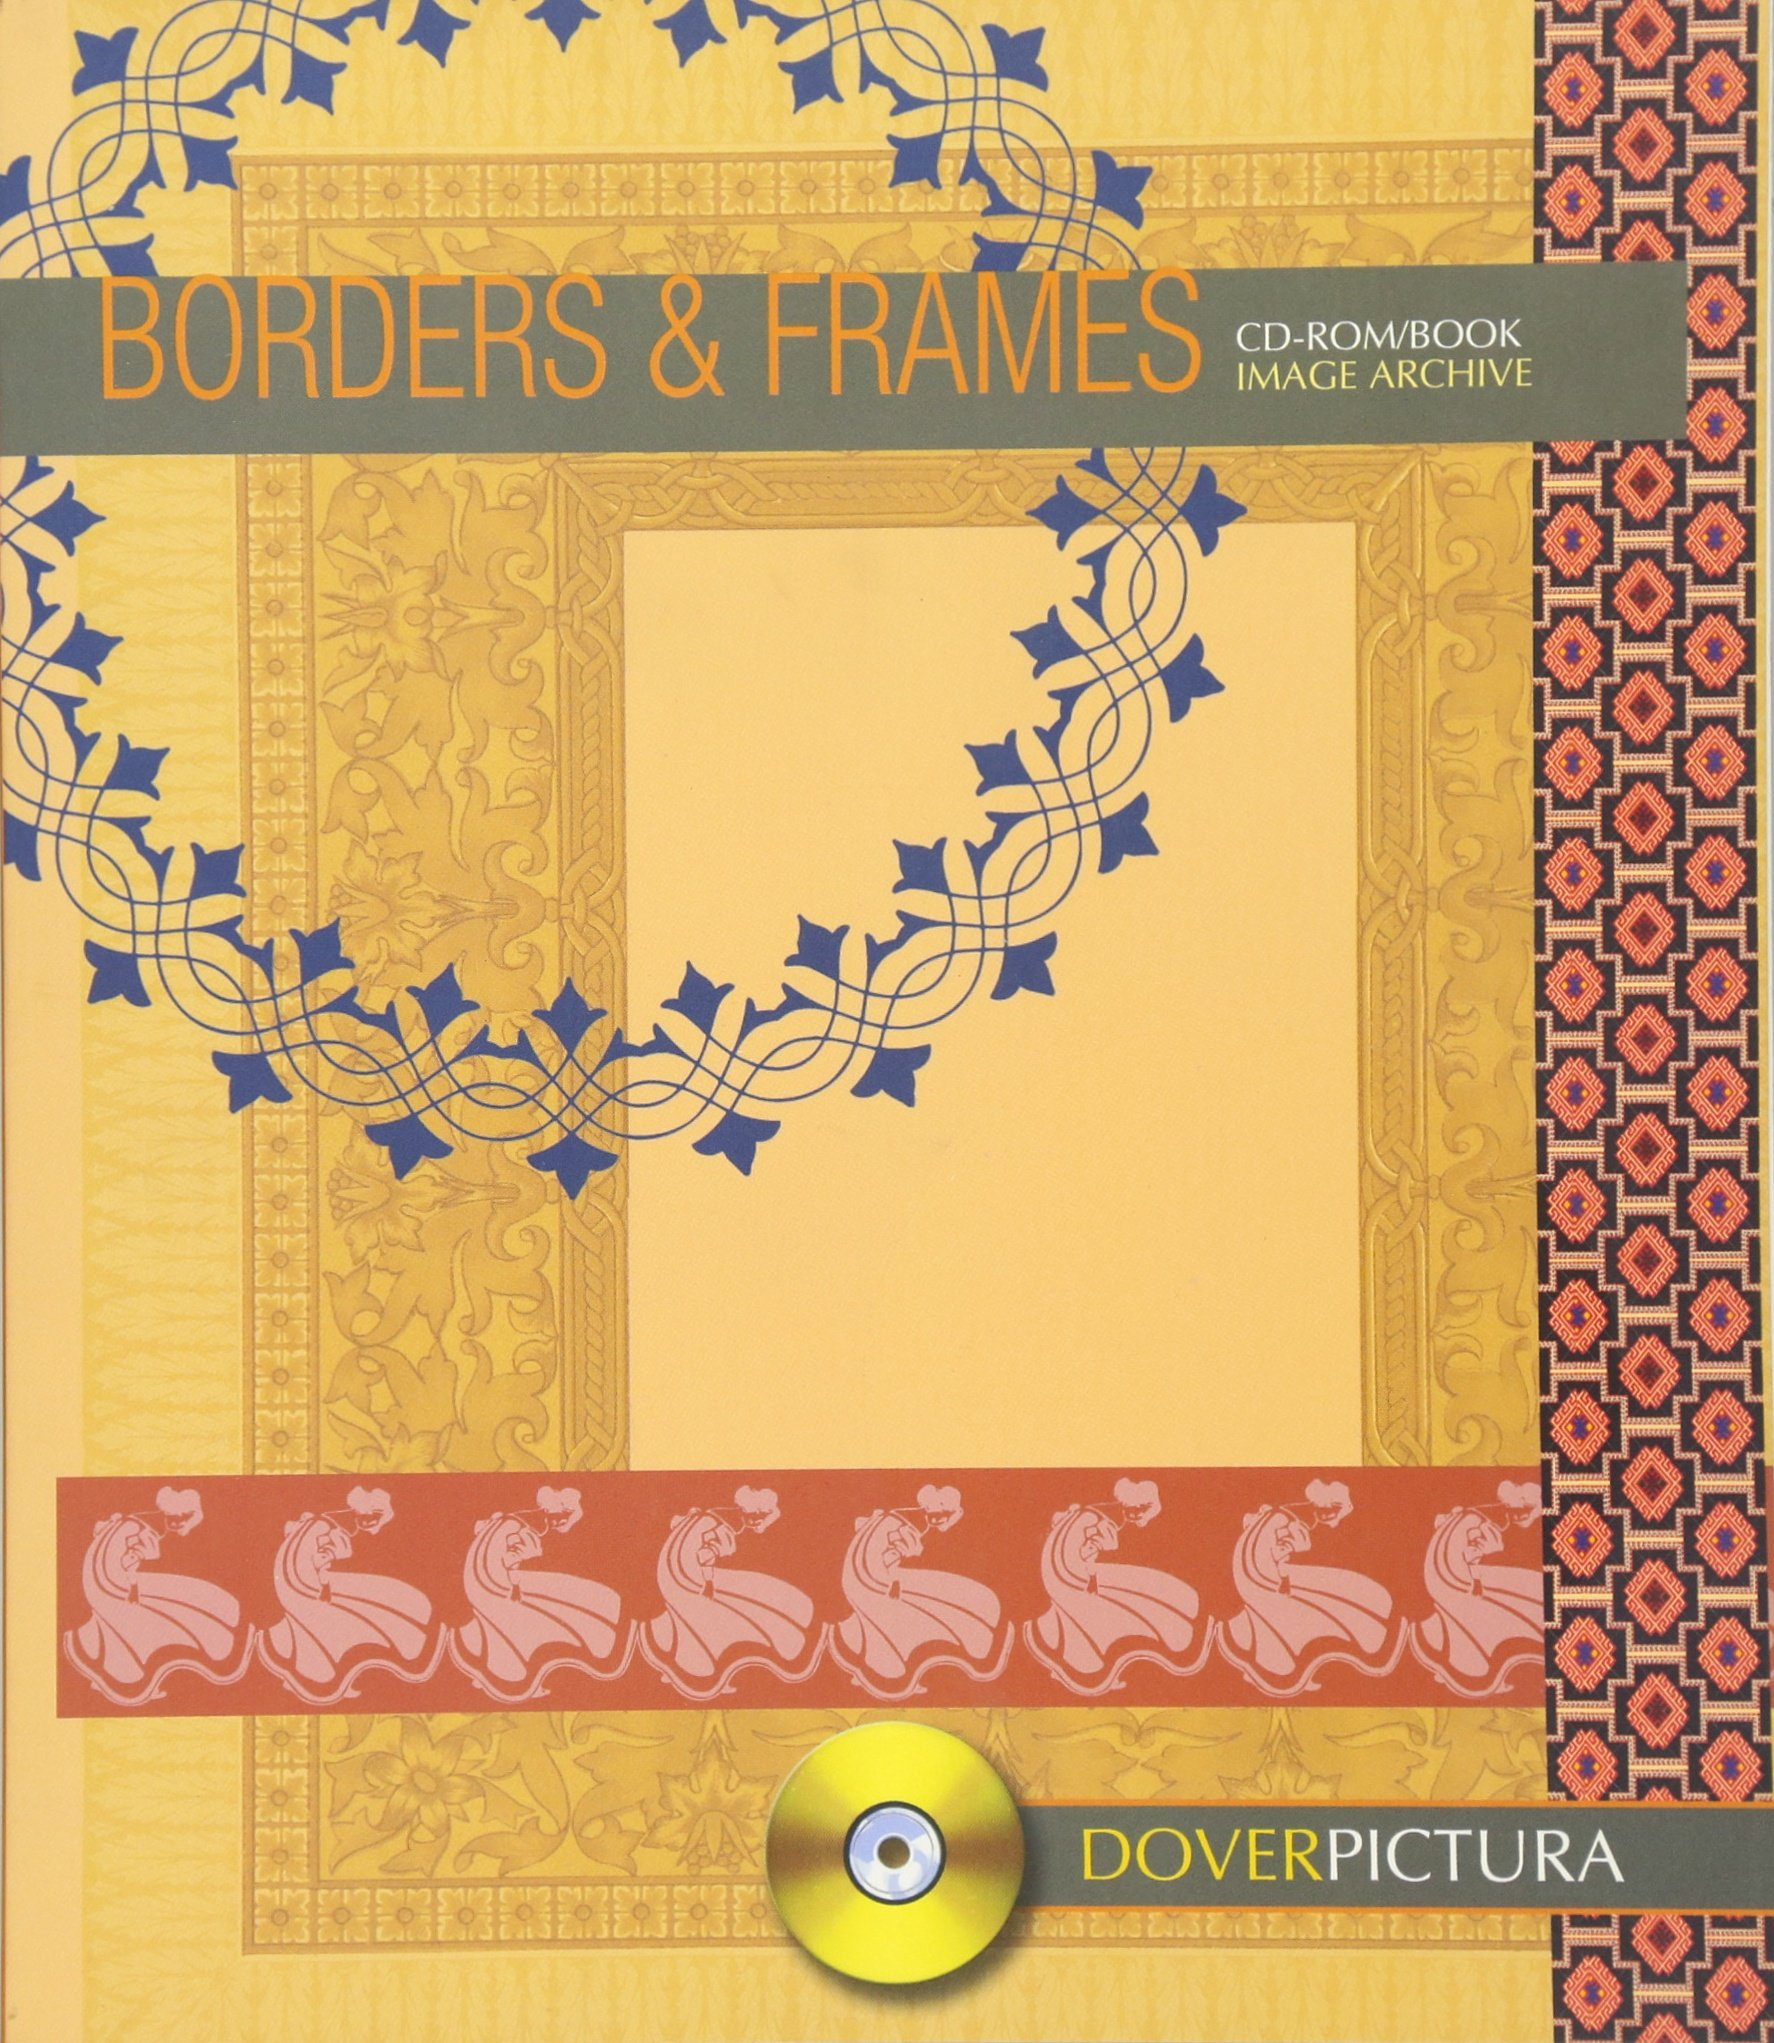 Read Online Borders and Frames (CD ROM & Book Image Archive) ebook